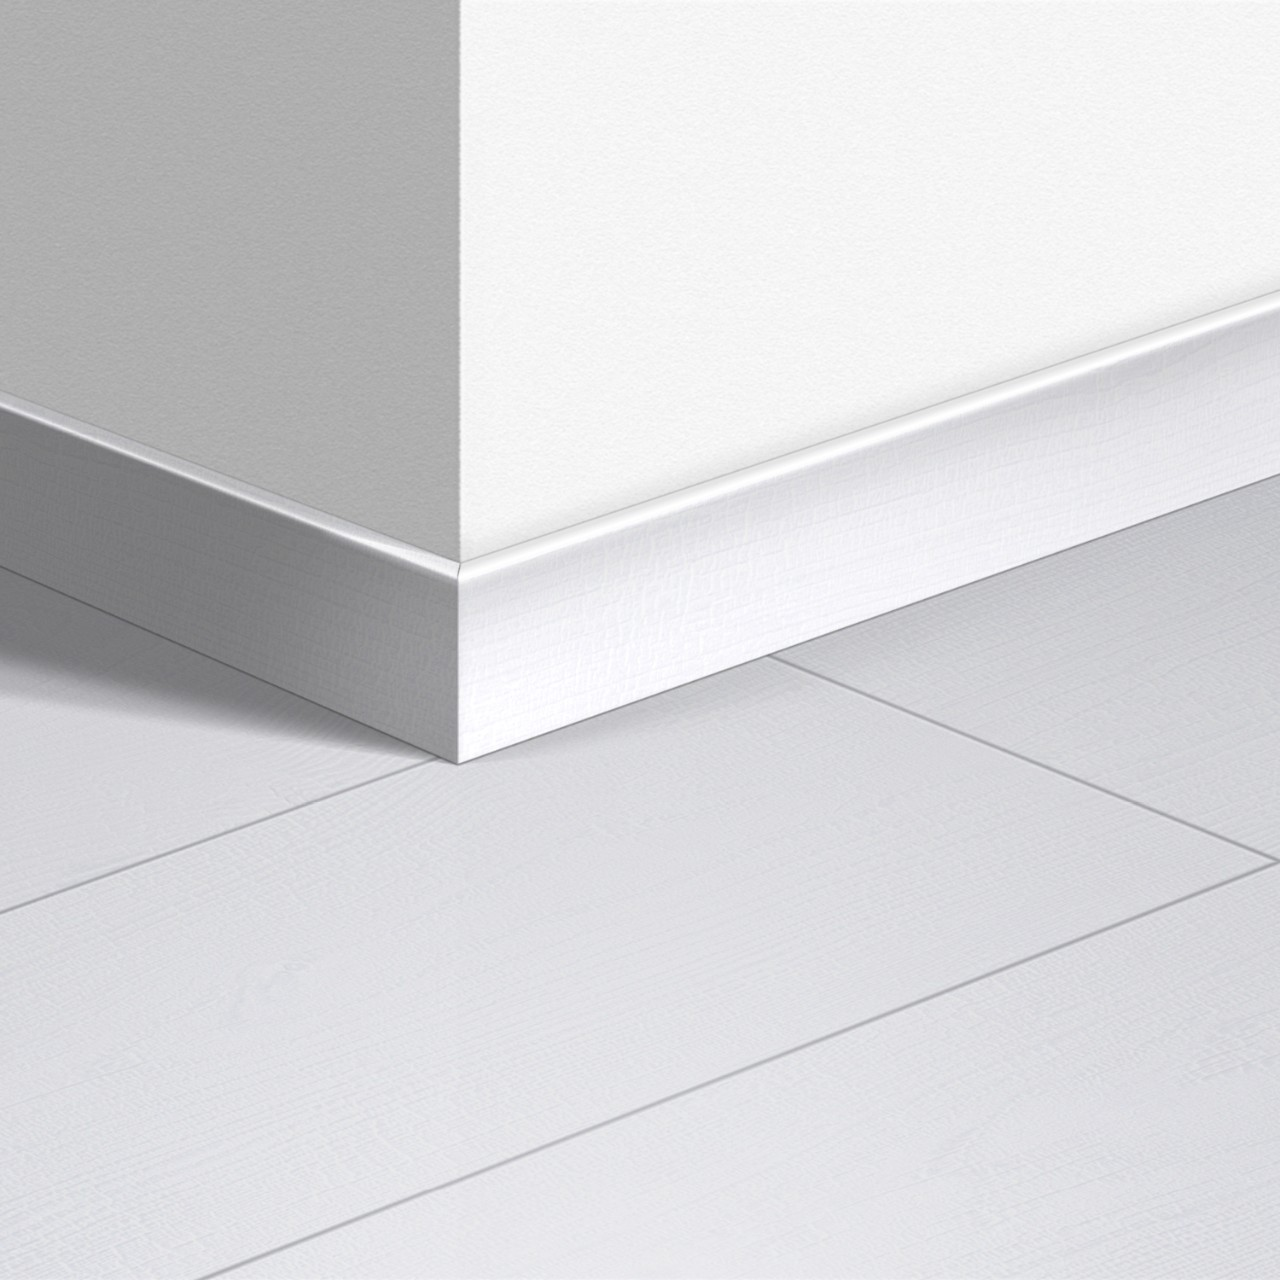 QSSK Laminate Accessories White planks QSSK01859